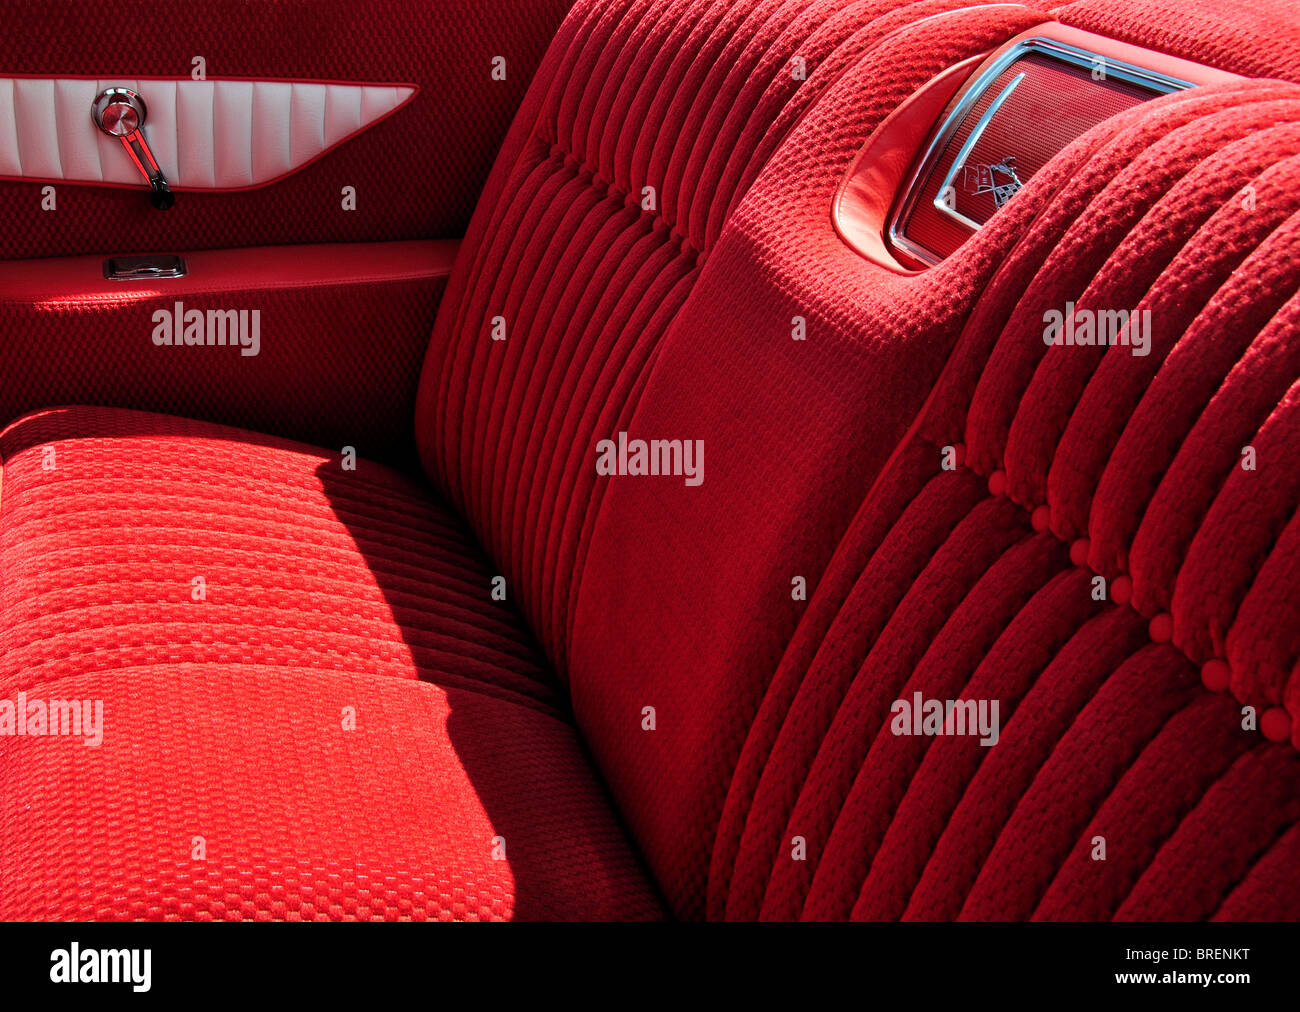 tuck and roll upholstery of rear seat of a classic 1961 chevrolet stock photo royalty free. Black Bedroom Furniture Sets. Home Design Ideas